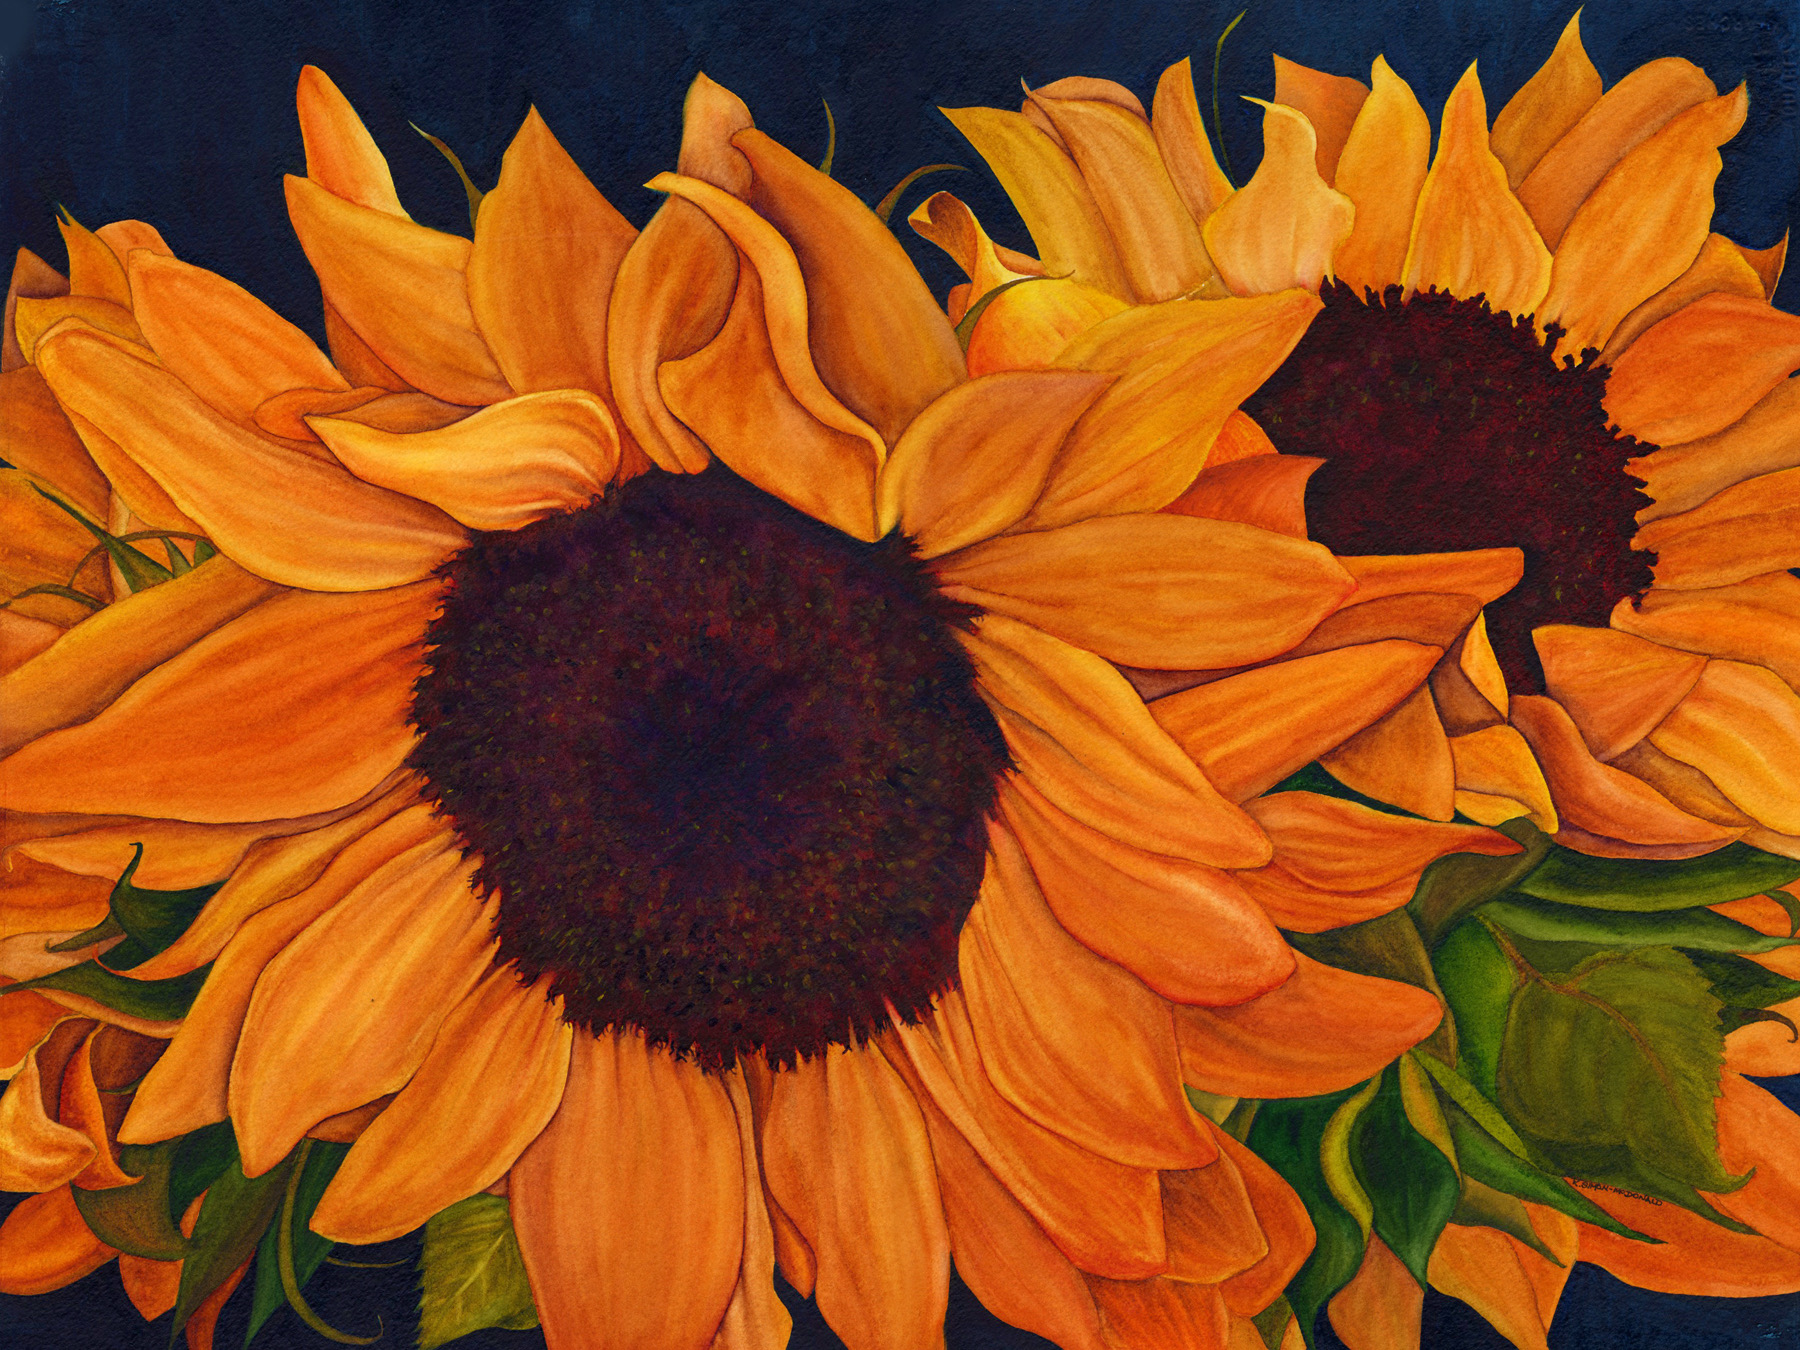 Sunflowers by Kathy Simon_McDonald $660